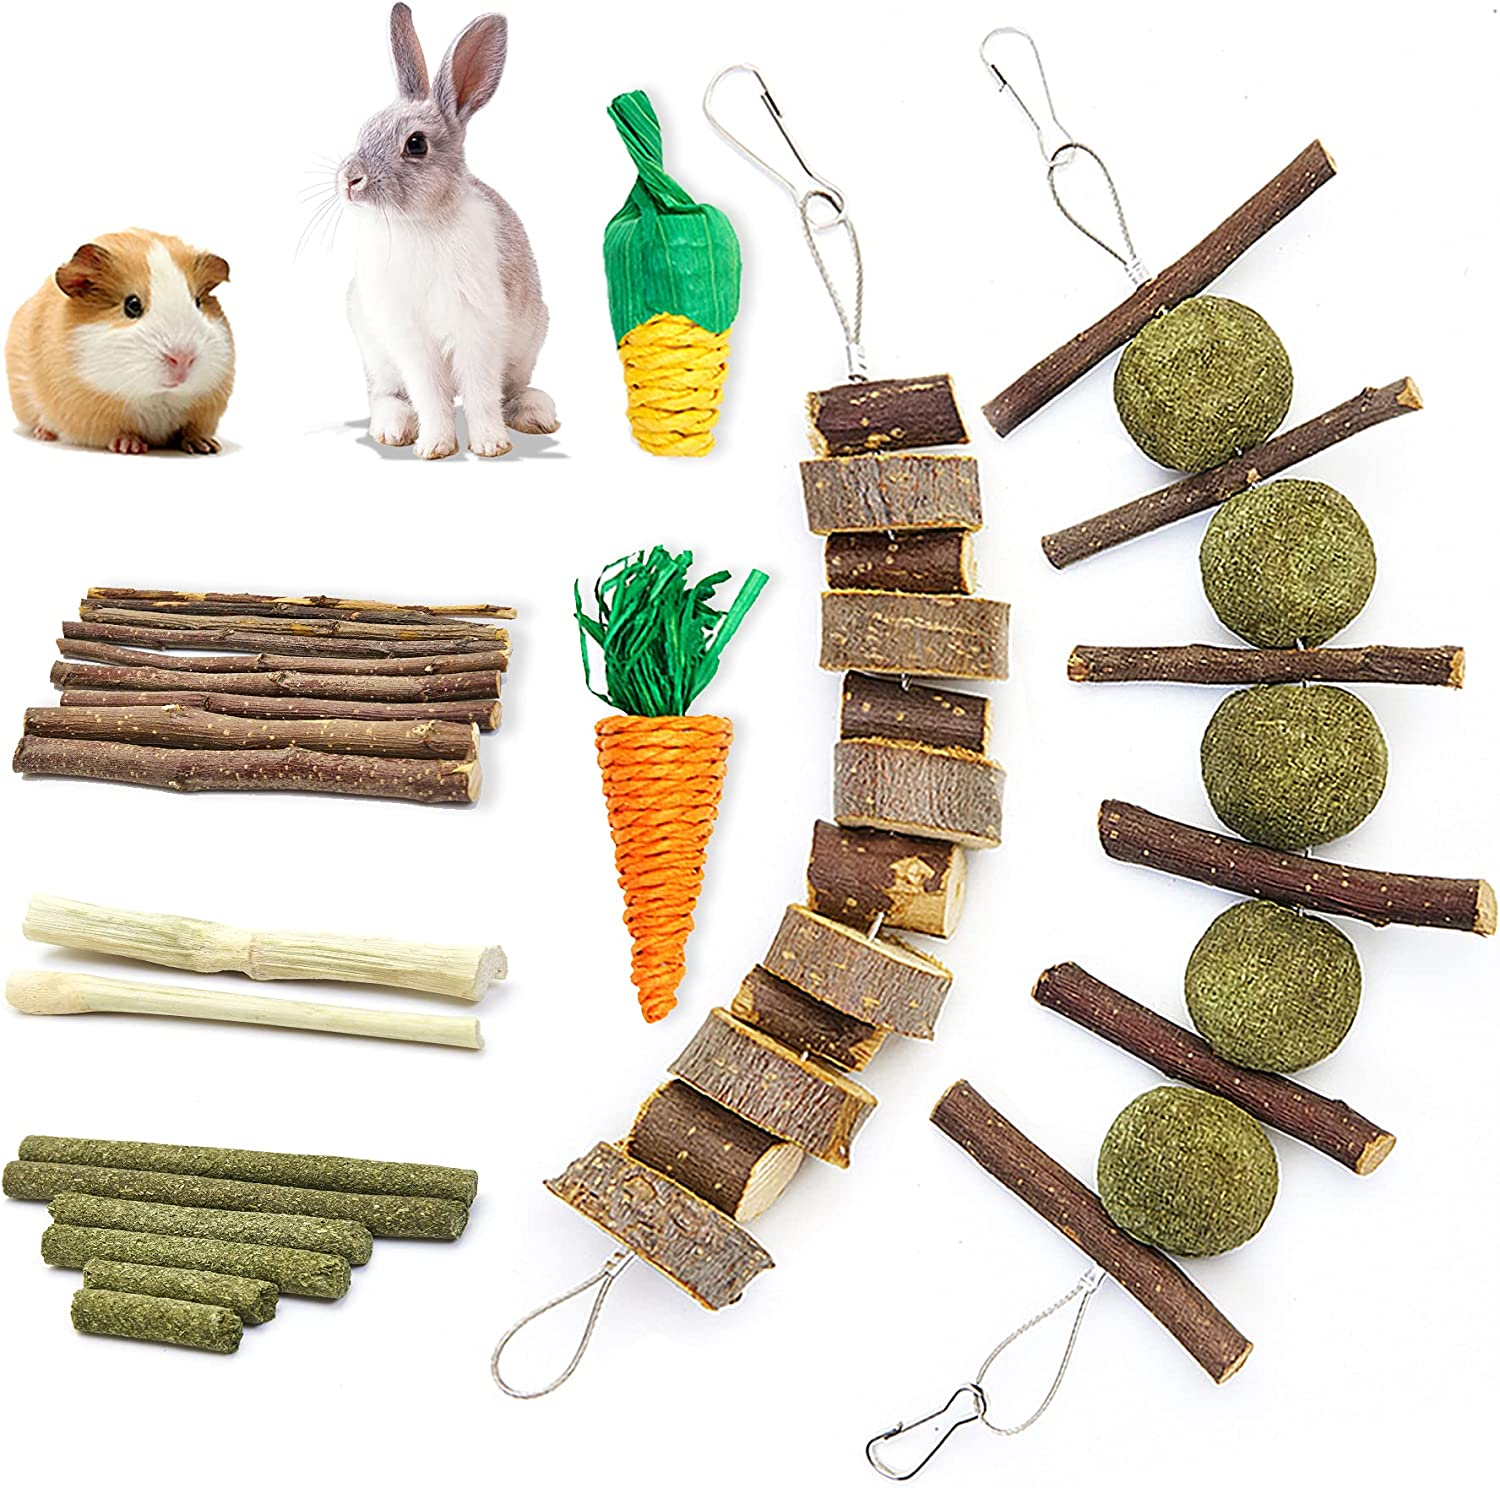 Blu&ben Rabbit Chew Toys for Teeth Grinding, Natural Organic Apple Wood Sticks with Timothy Hay Balls, Promote Dental Health, Cage Accessories for Bunny, Chinchillas, Guinea Pigs, Hamsters, Small Pets